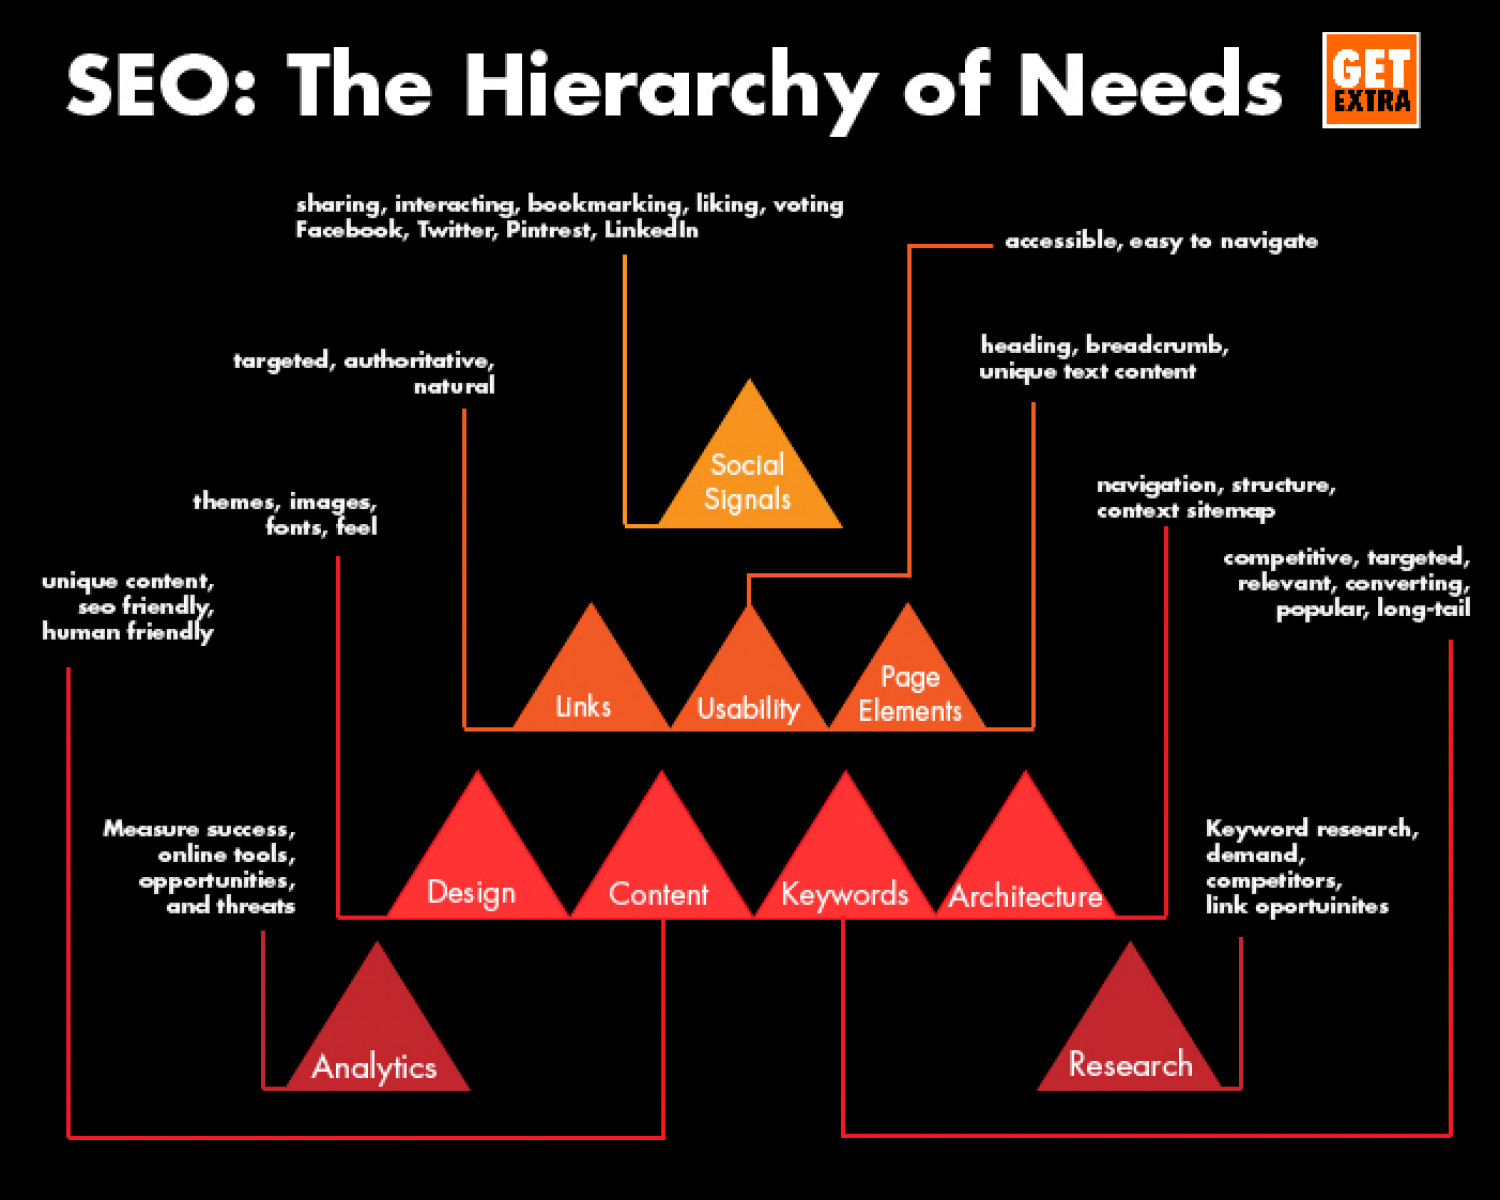 SEO: The Hierarchy of Needs Infographic